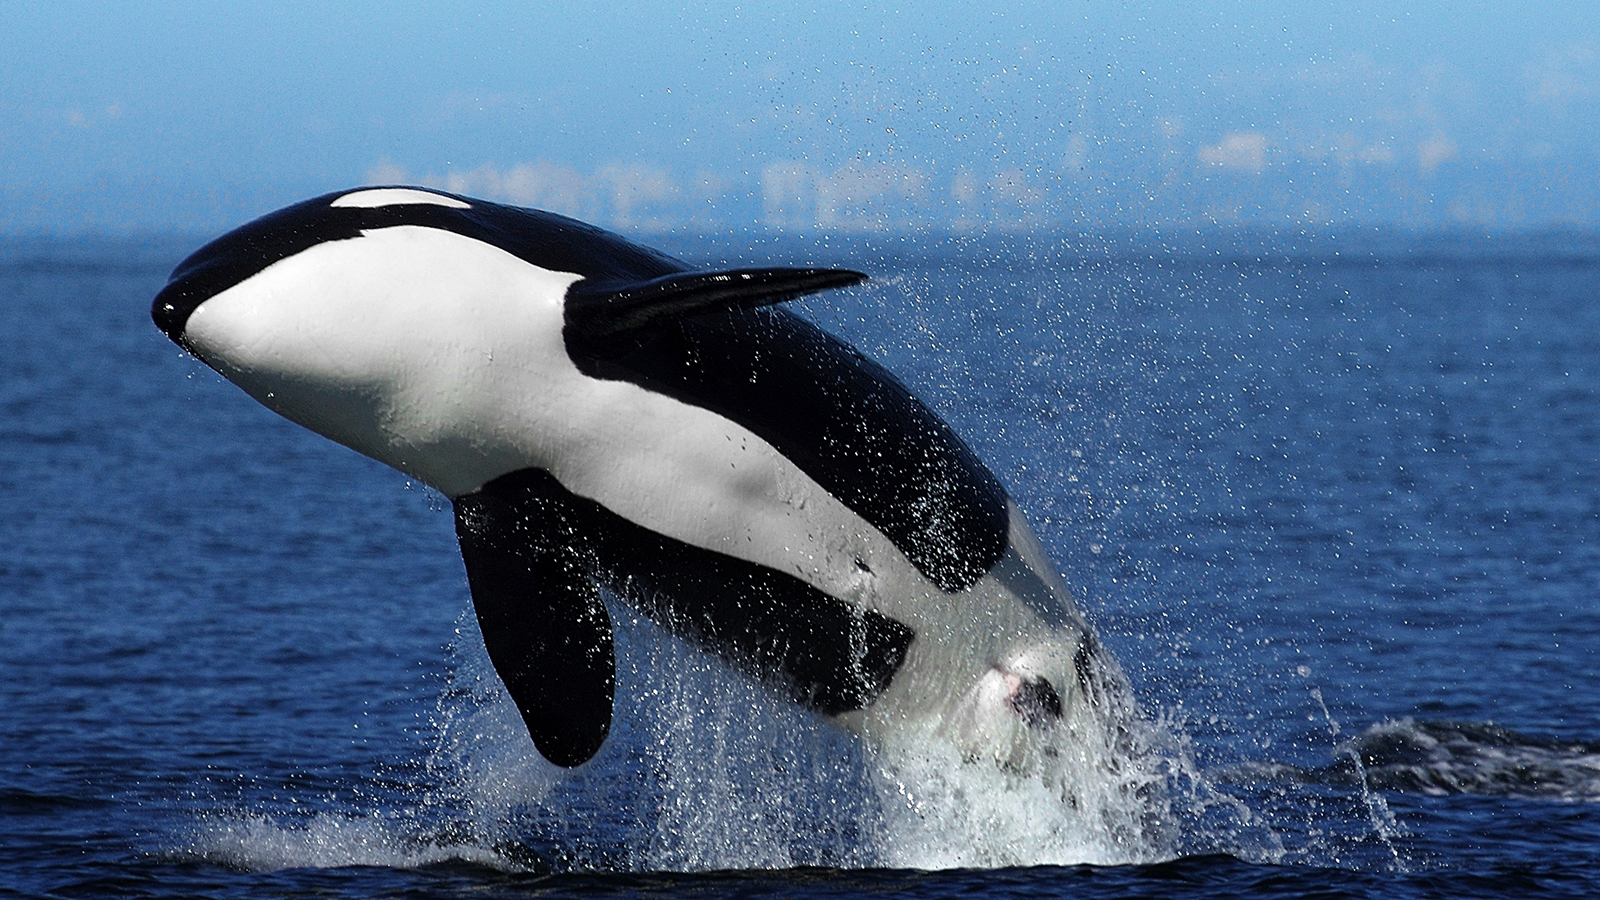 HQ Orca Wallpapers | File 1291.1Kb